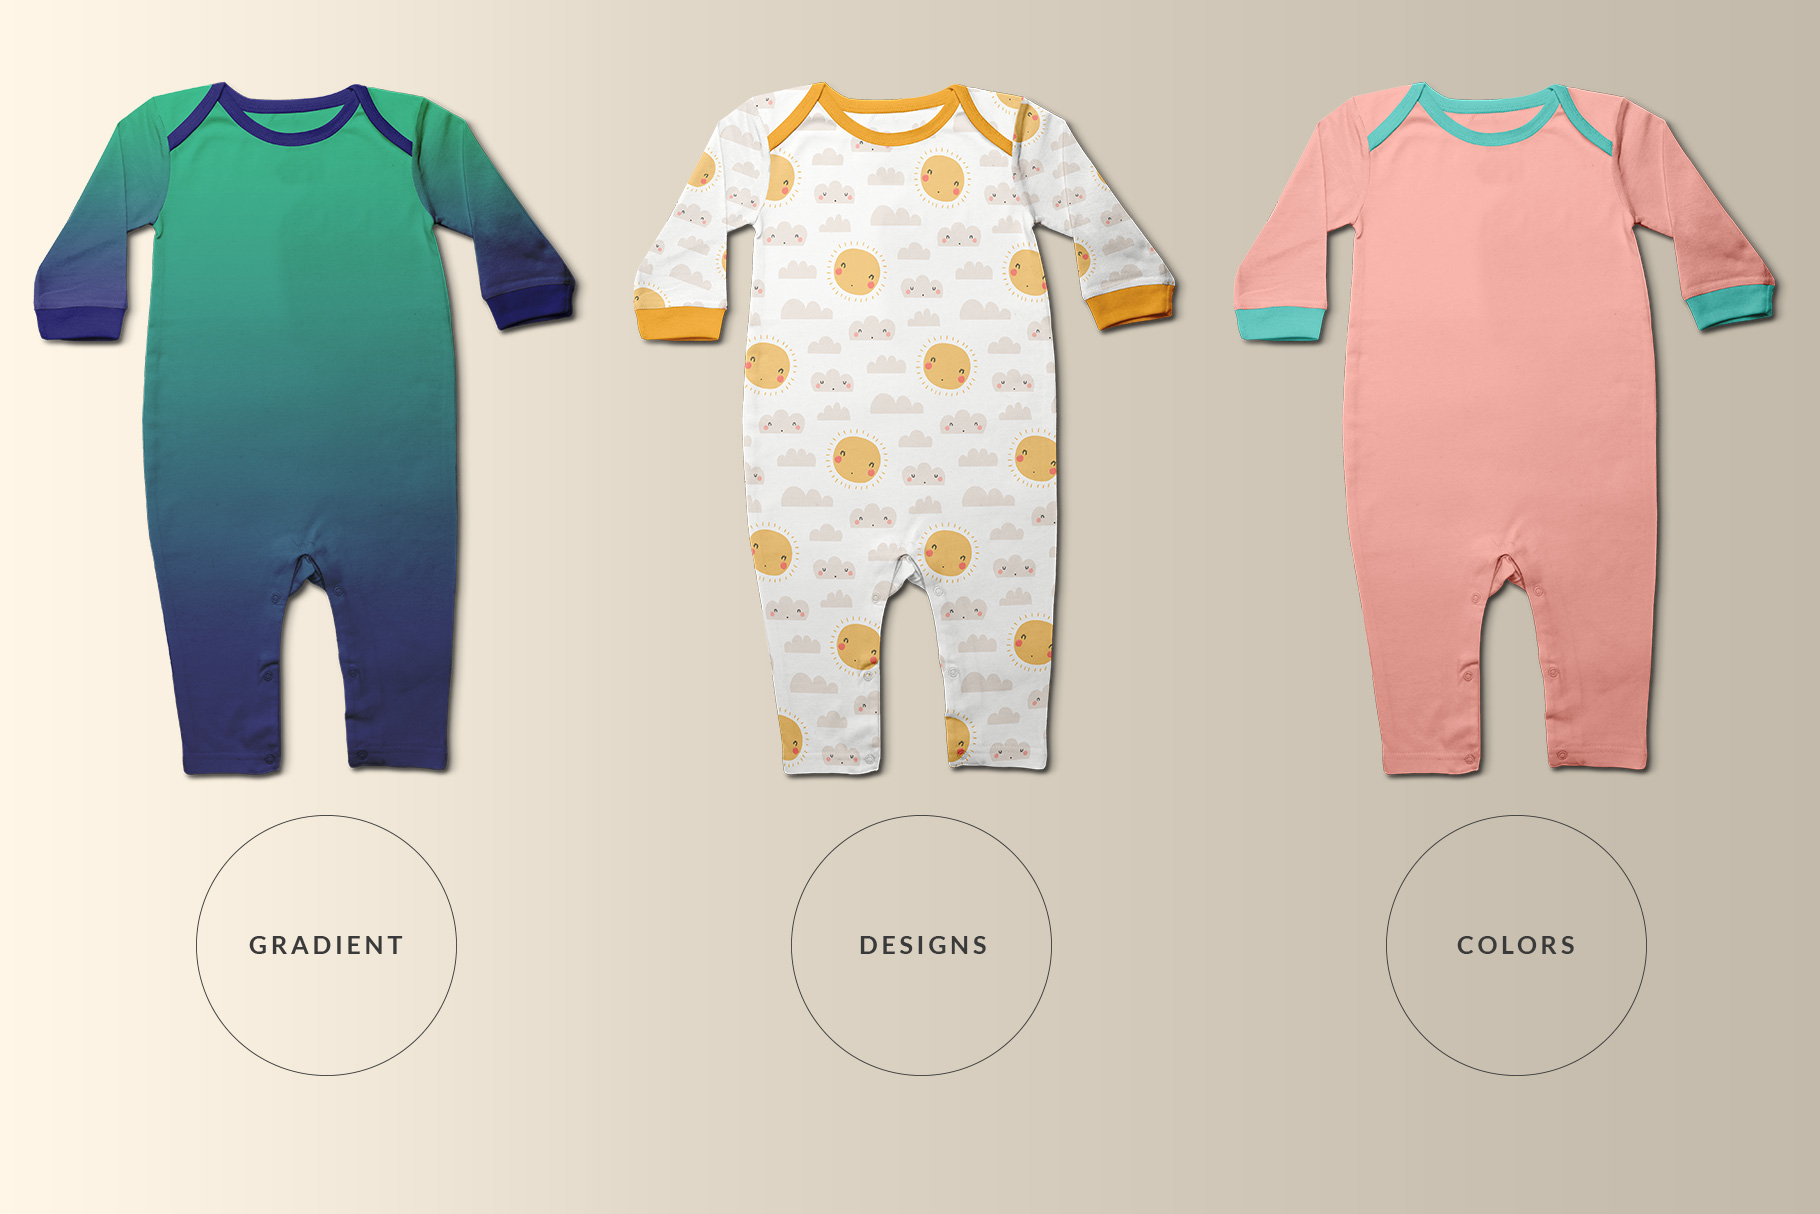 types of the top view kids quarter sleeve romper mockup